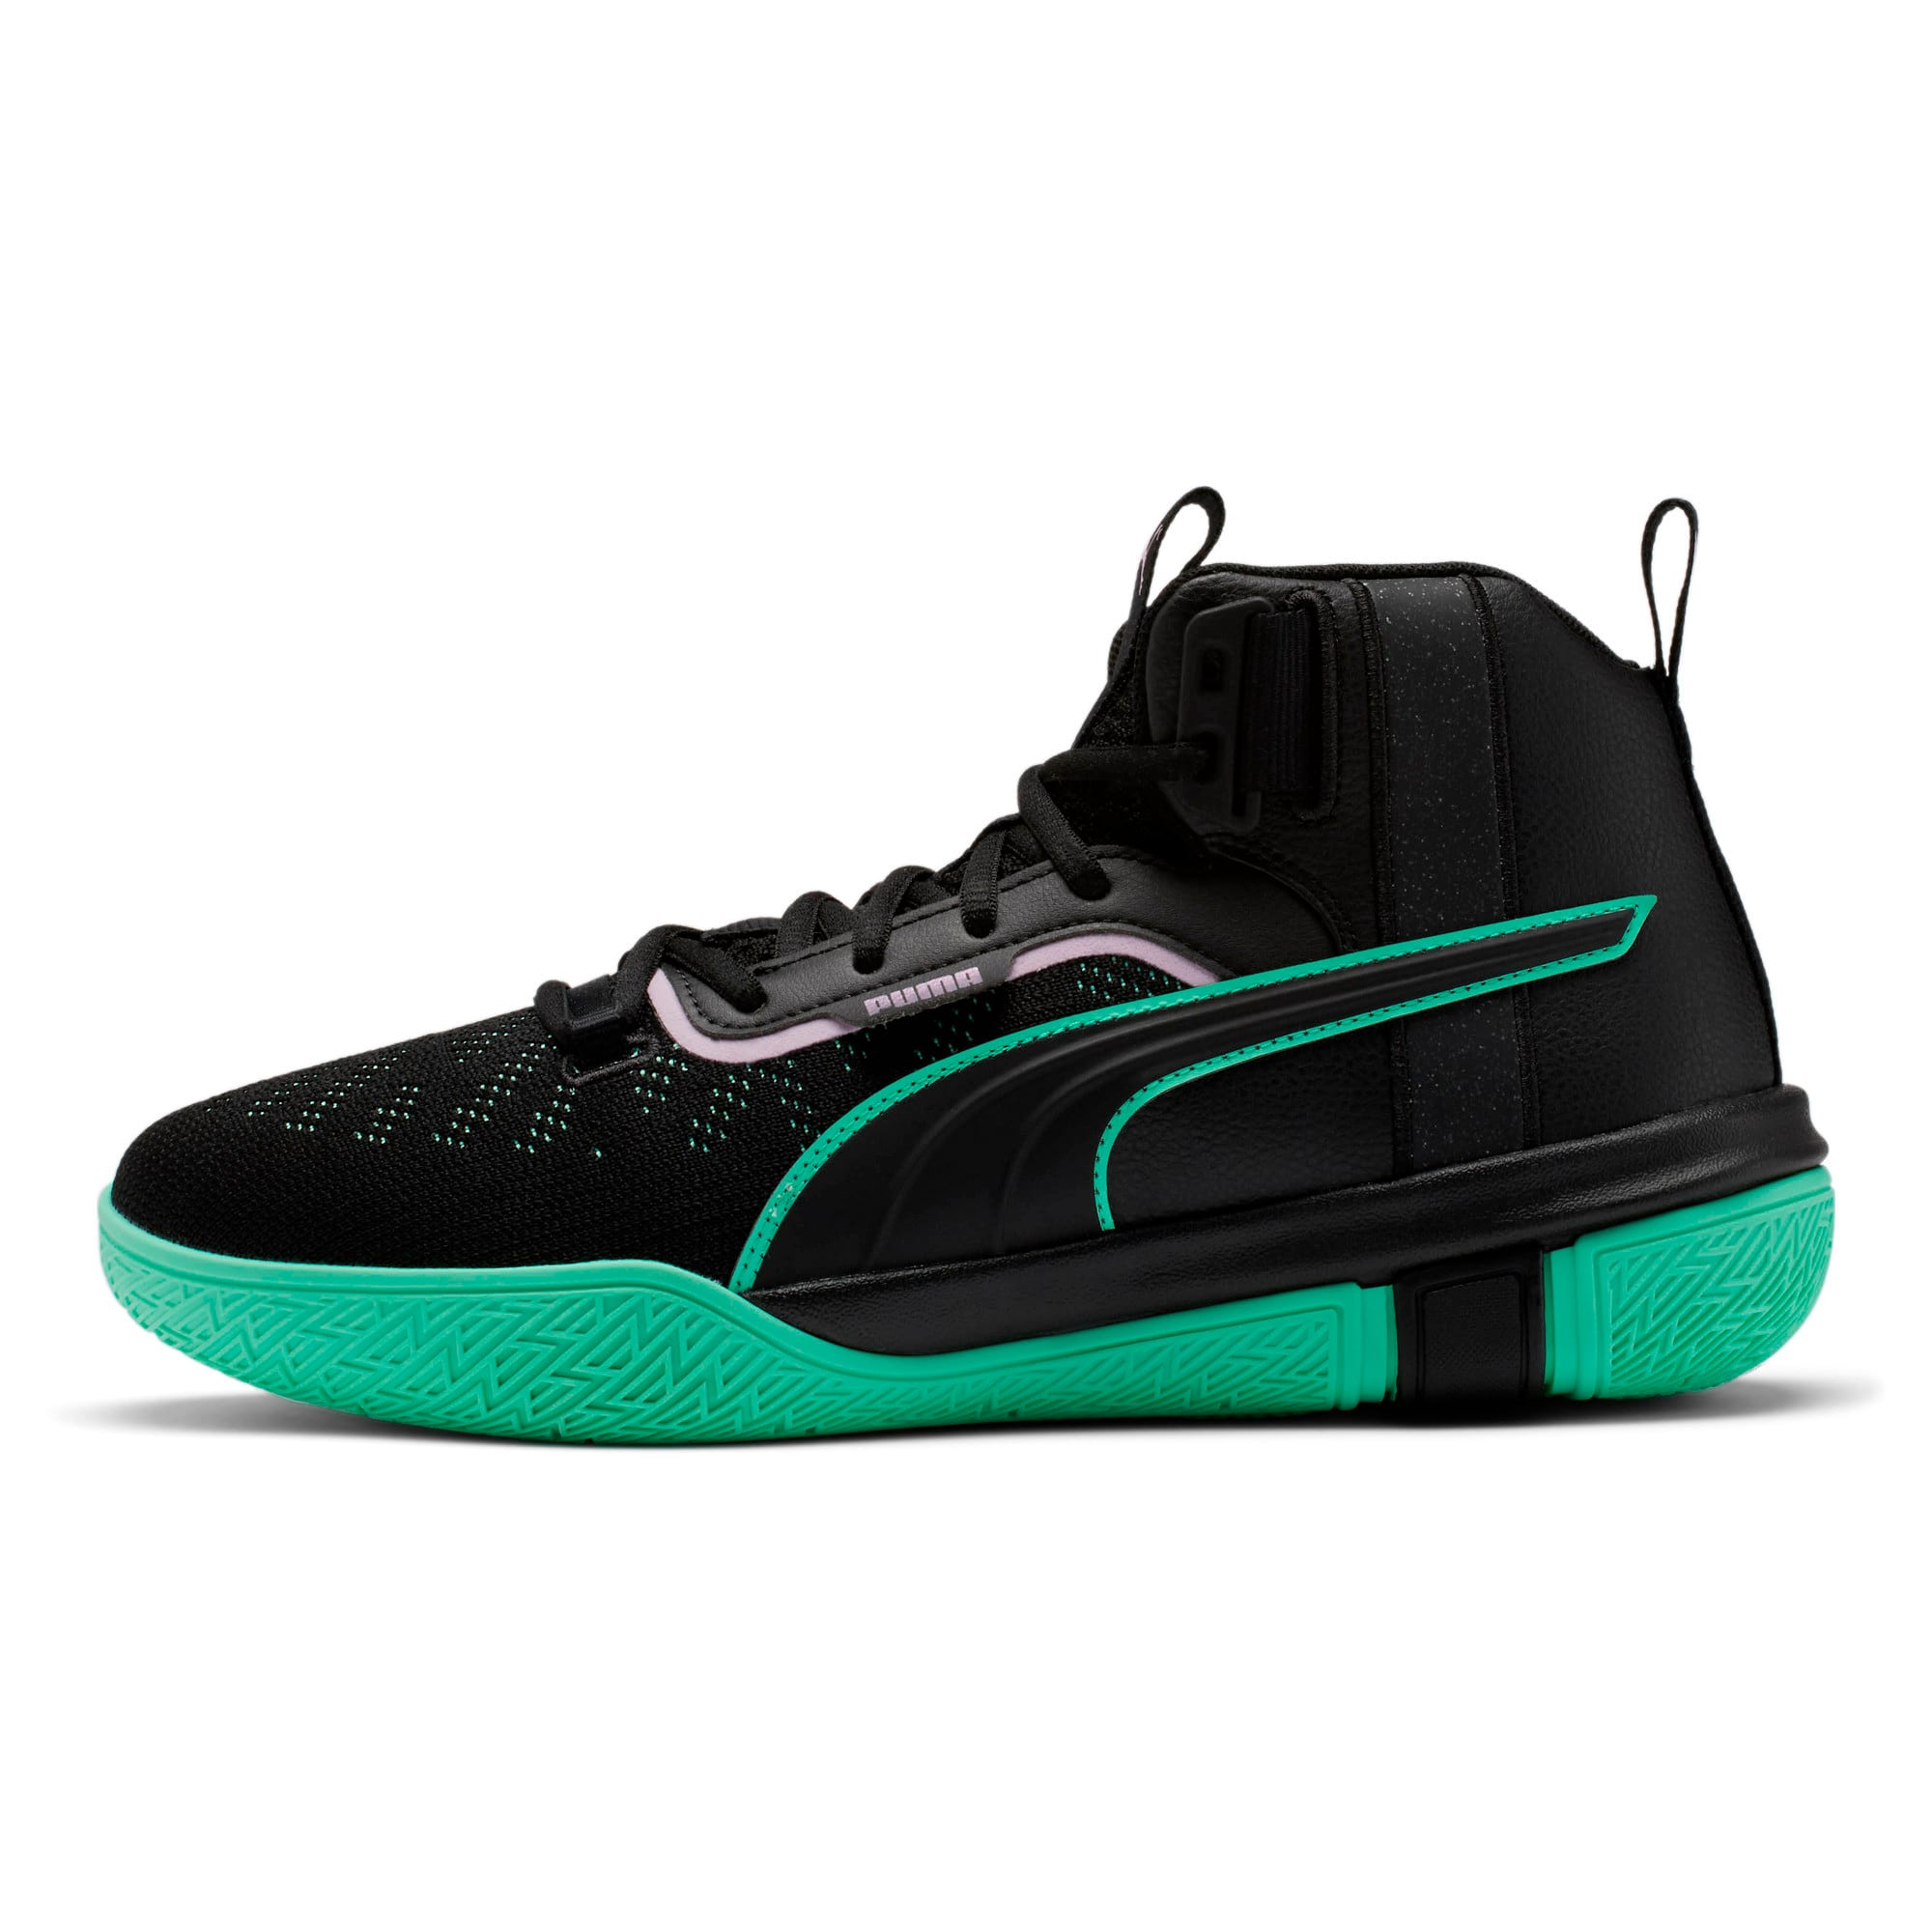 Thumbnail 1 of Legacy Dark Mode Basketball Shoes, Puma Black-Orchid Bloom, medium